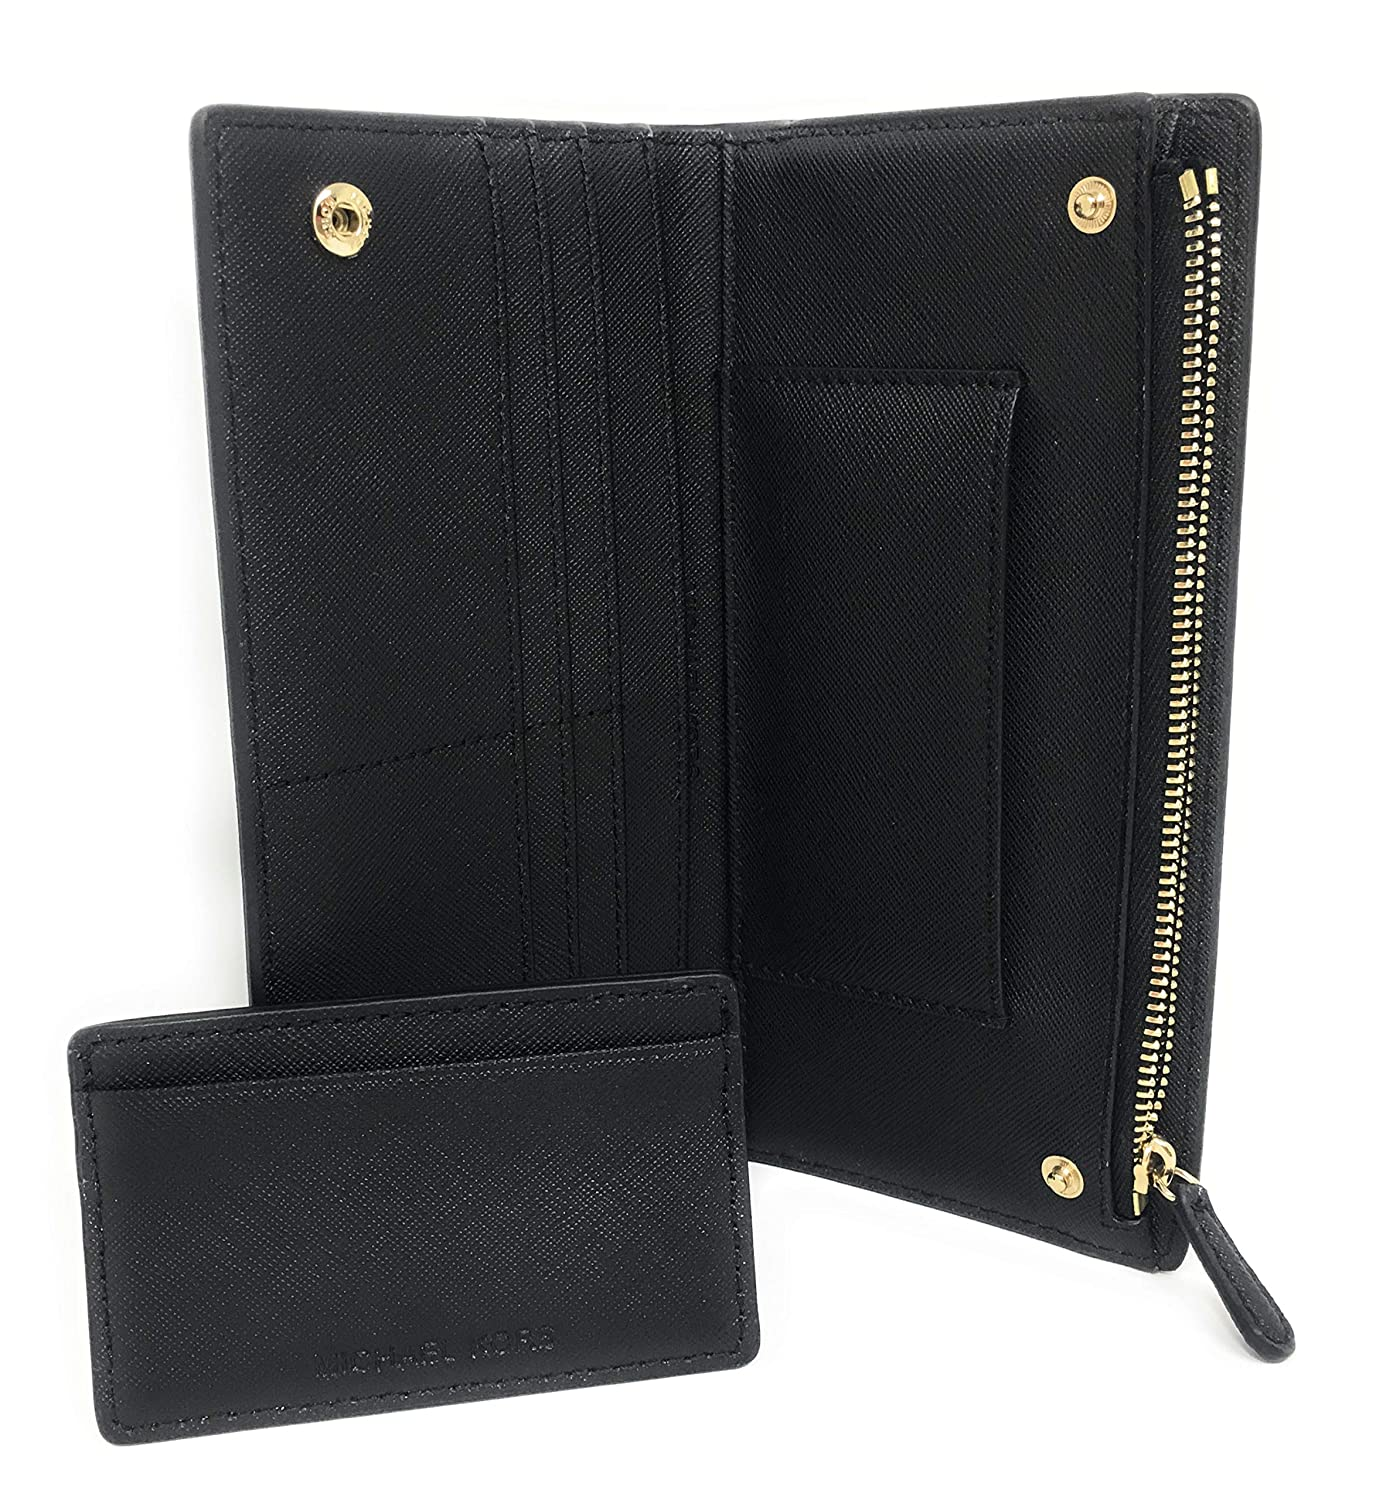 aa23bb1939b5 Amazon.com  Michael Kors Jet Set Travel Leather Medium Large Card Case  Carryall Wallet with Removable ID Card Holder (Black with Gold Hardware)   Gaby s Bags